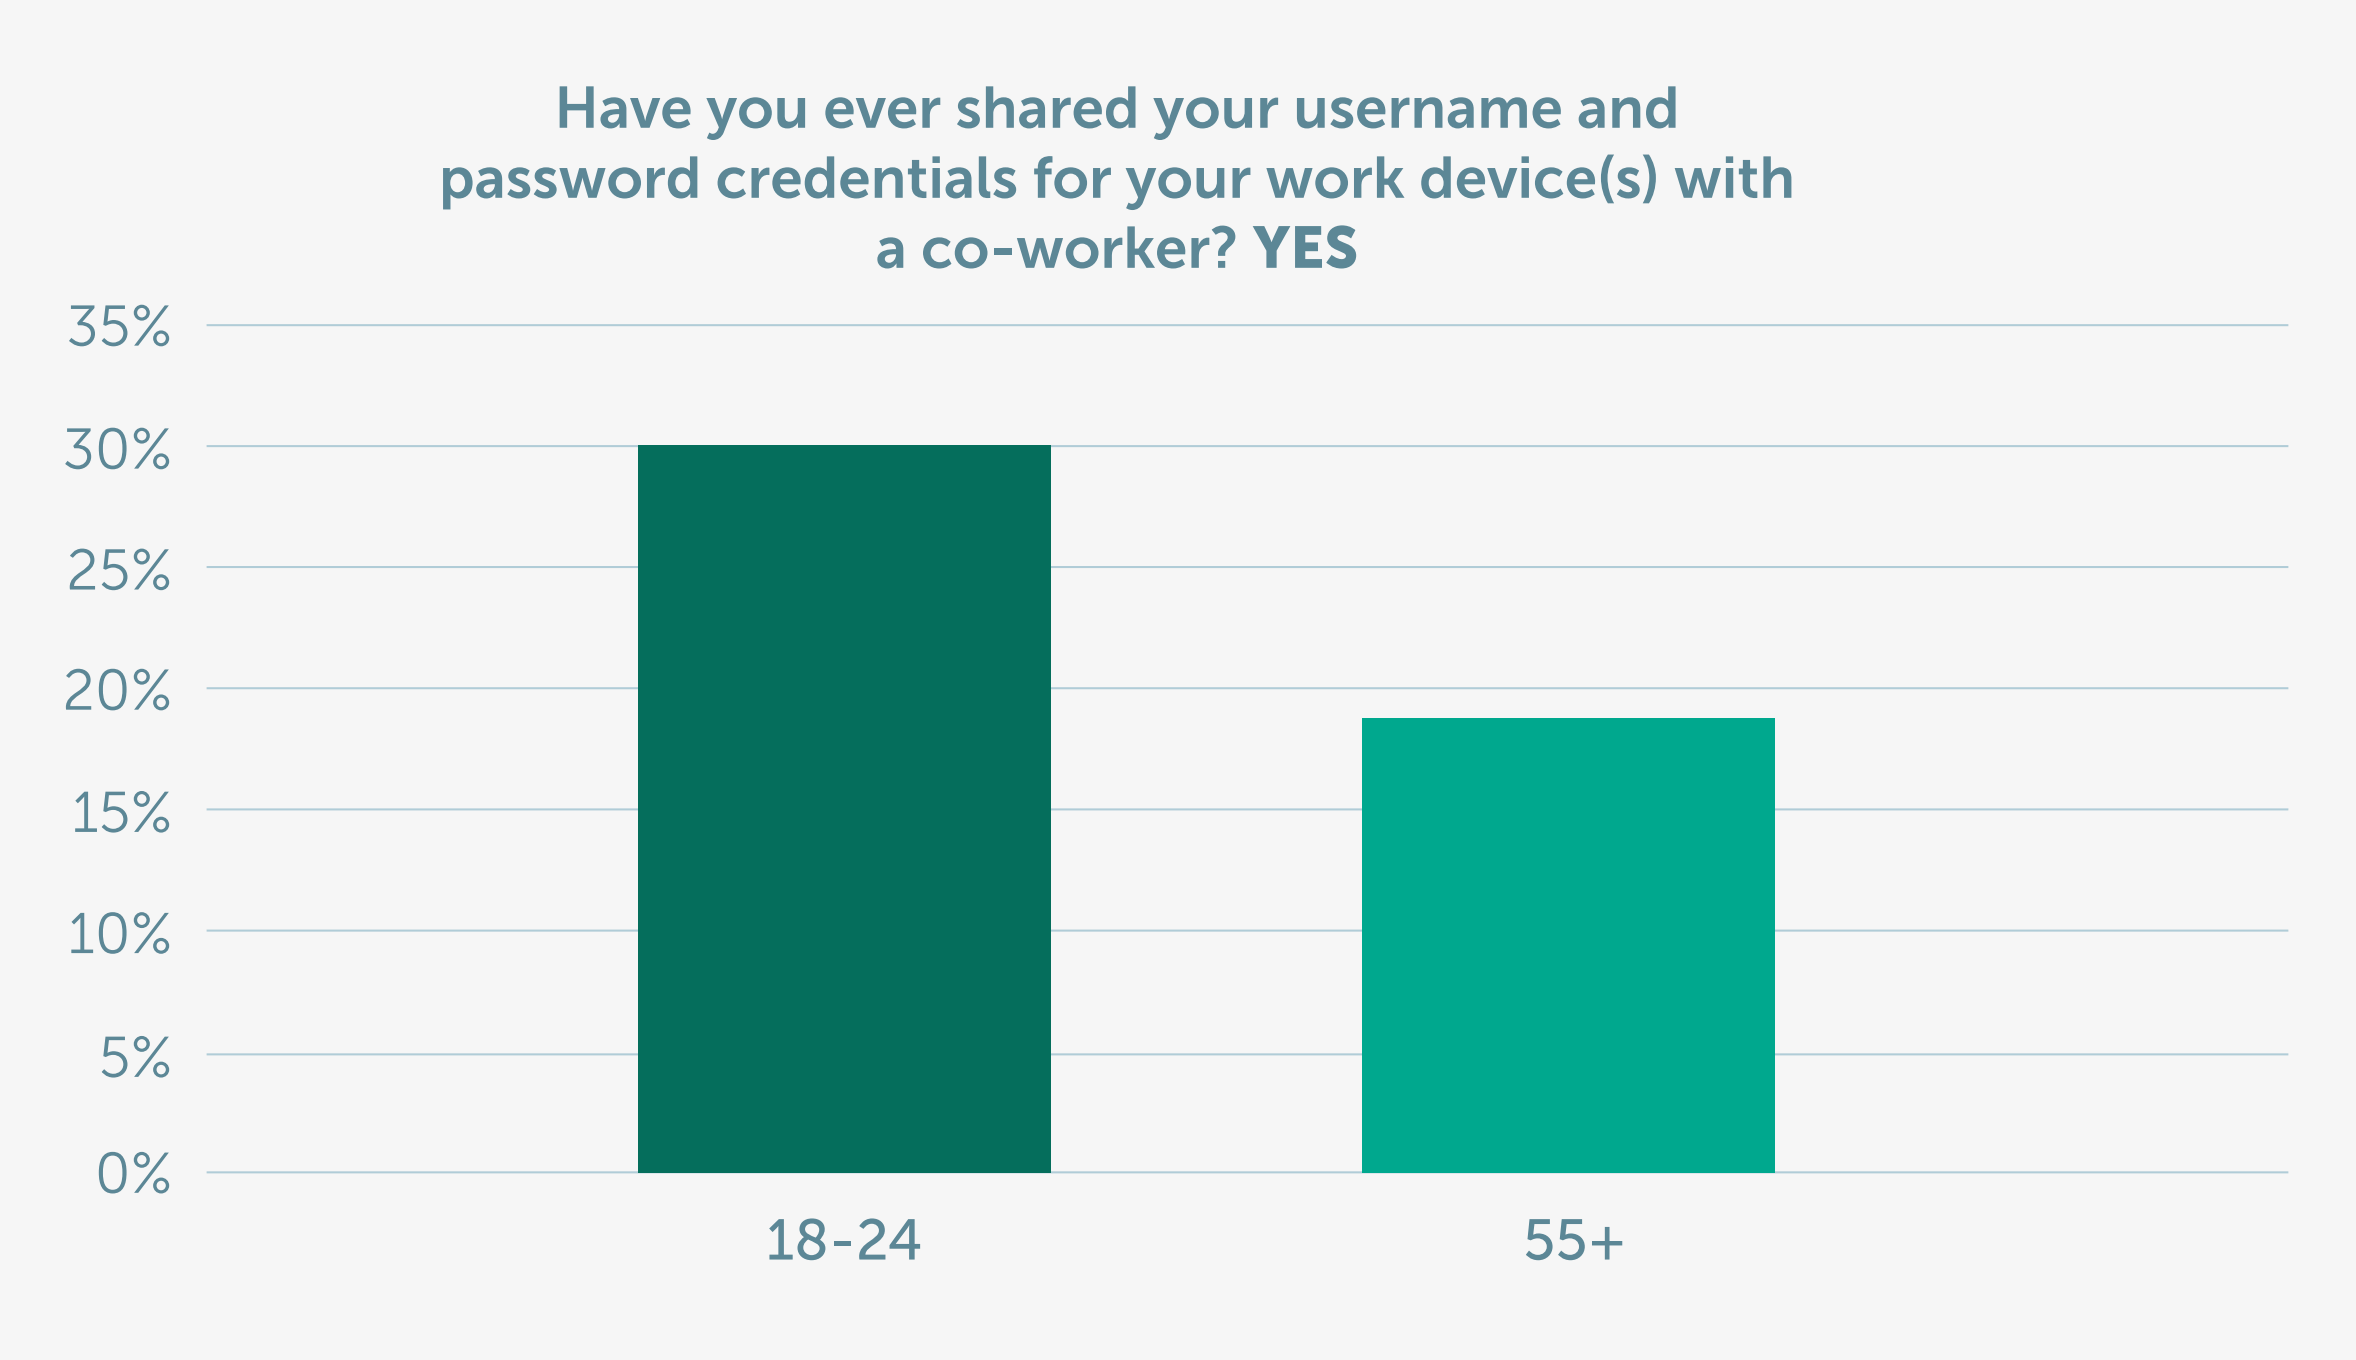 Figure 1: Have you ever shared your username and password credentials for your work device(s) with a co-worker? (Chart 5*)